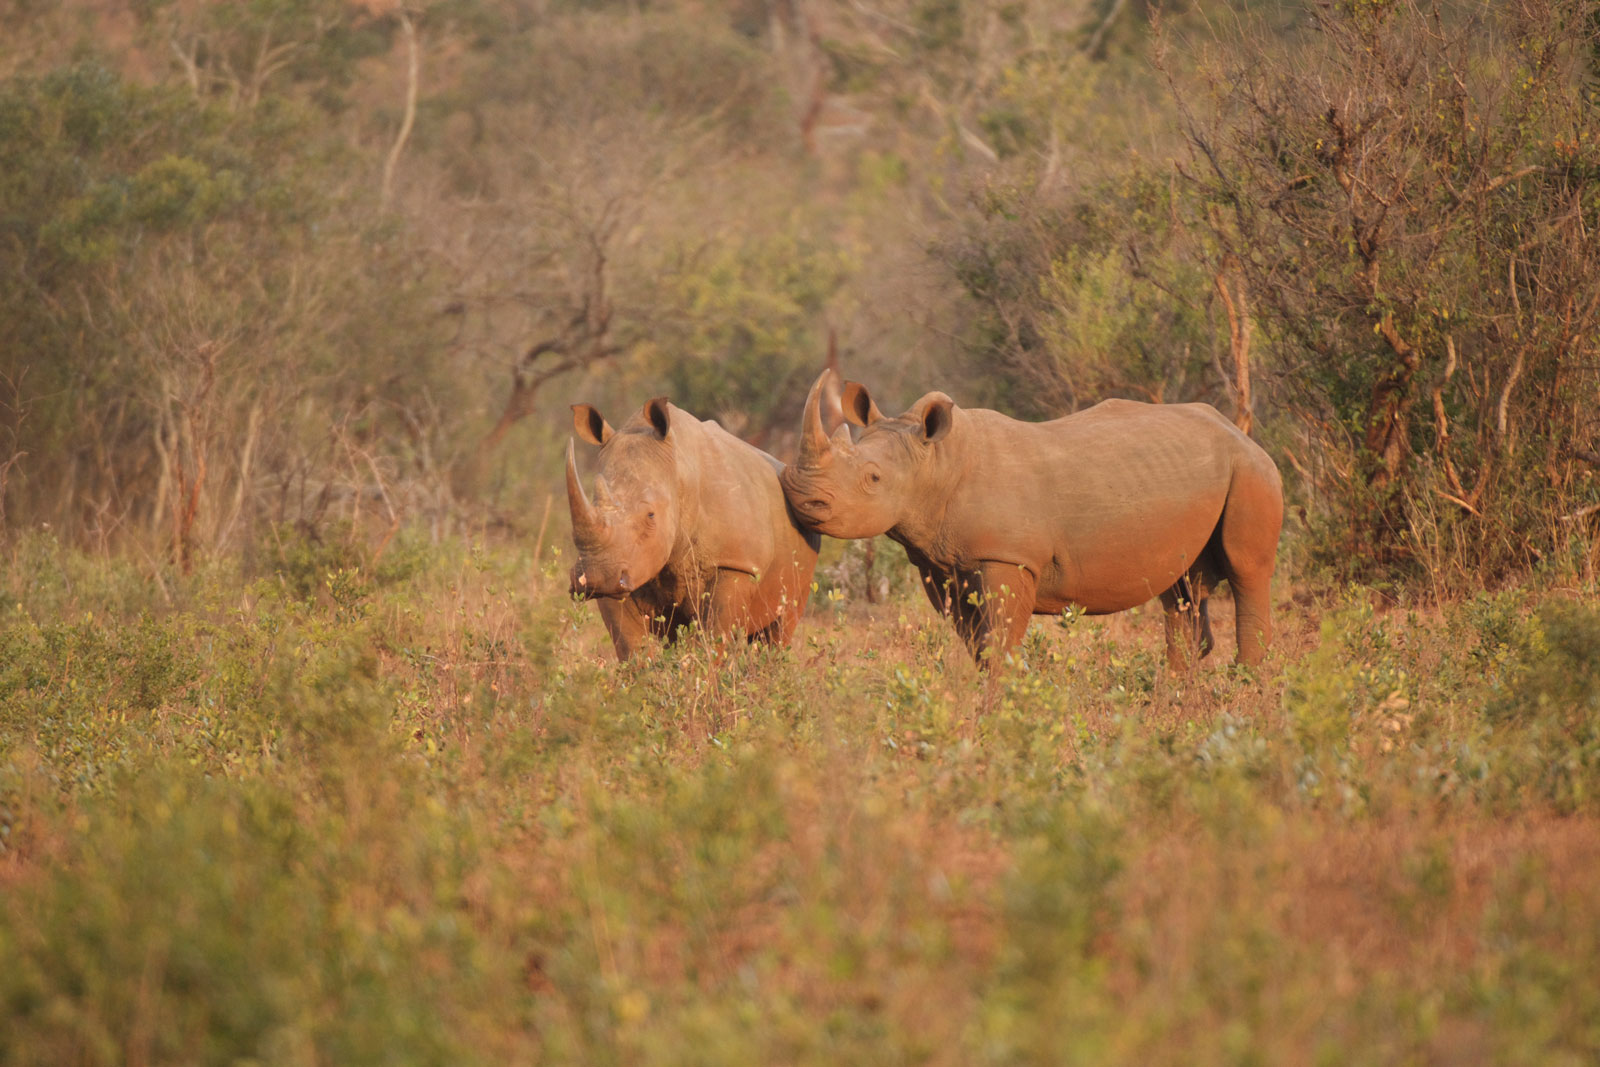 rhinos were poached in South Africa. Peace Parks is working hard to fight the scourge of poaching using technology like AI